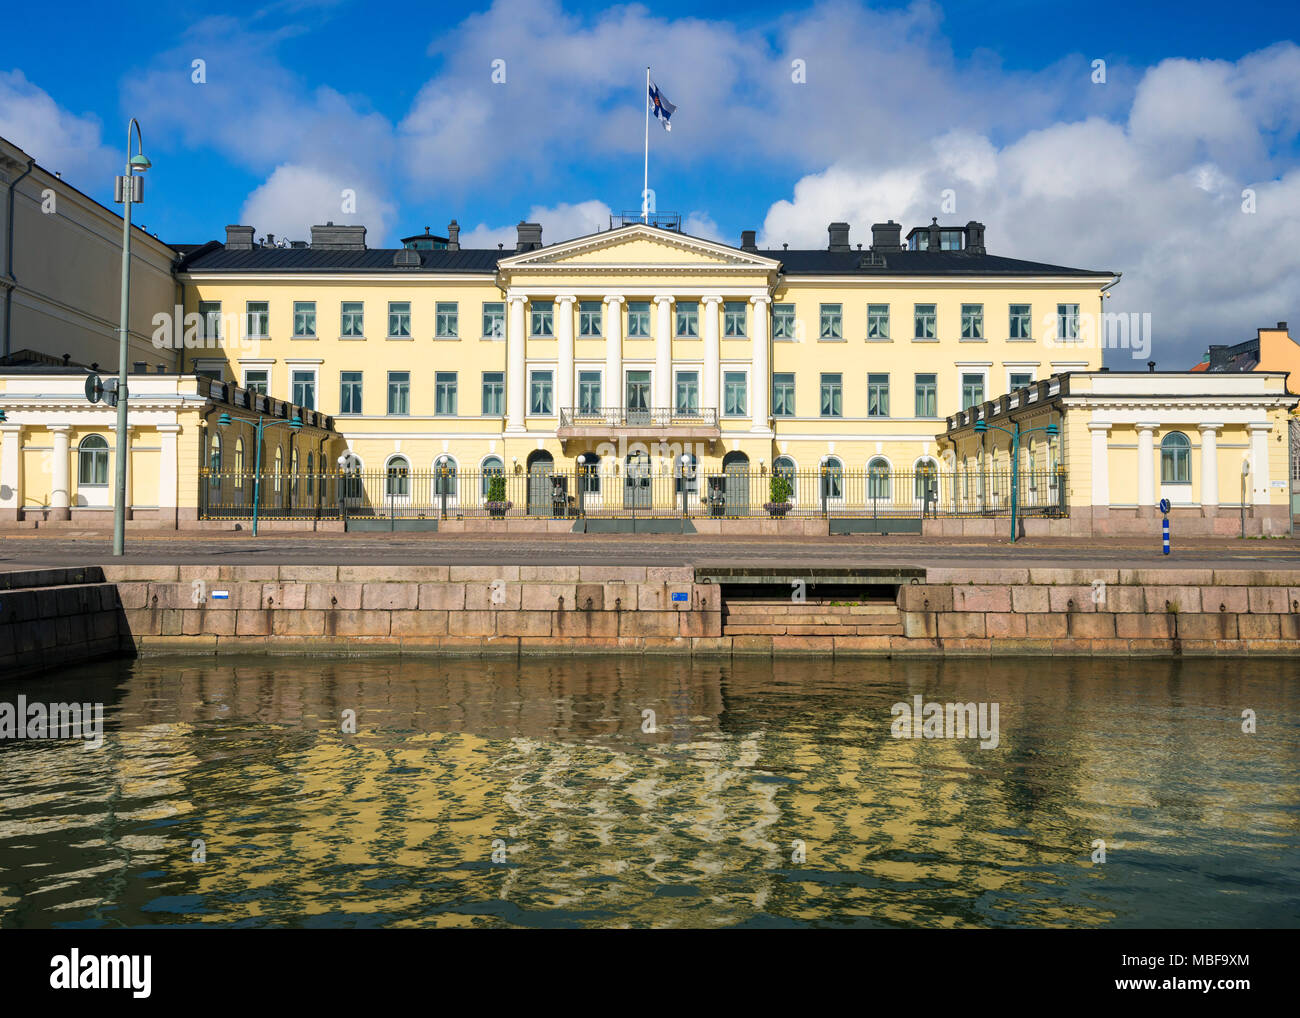 The Presidential Palace, Helsinki, Finland, Europe - Stock Image